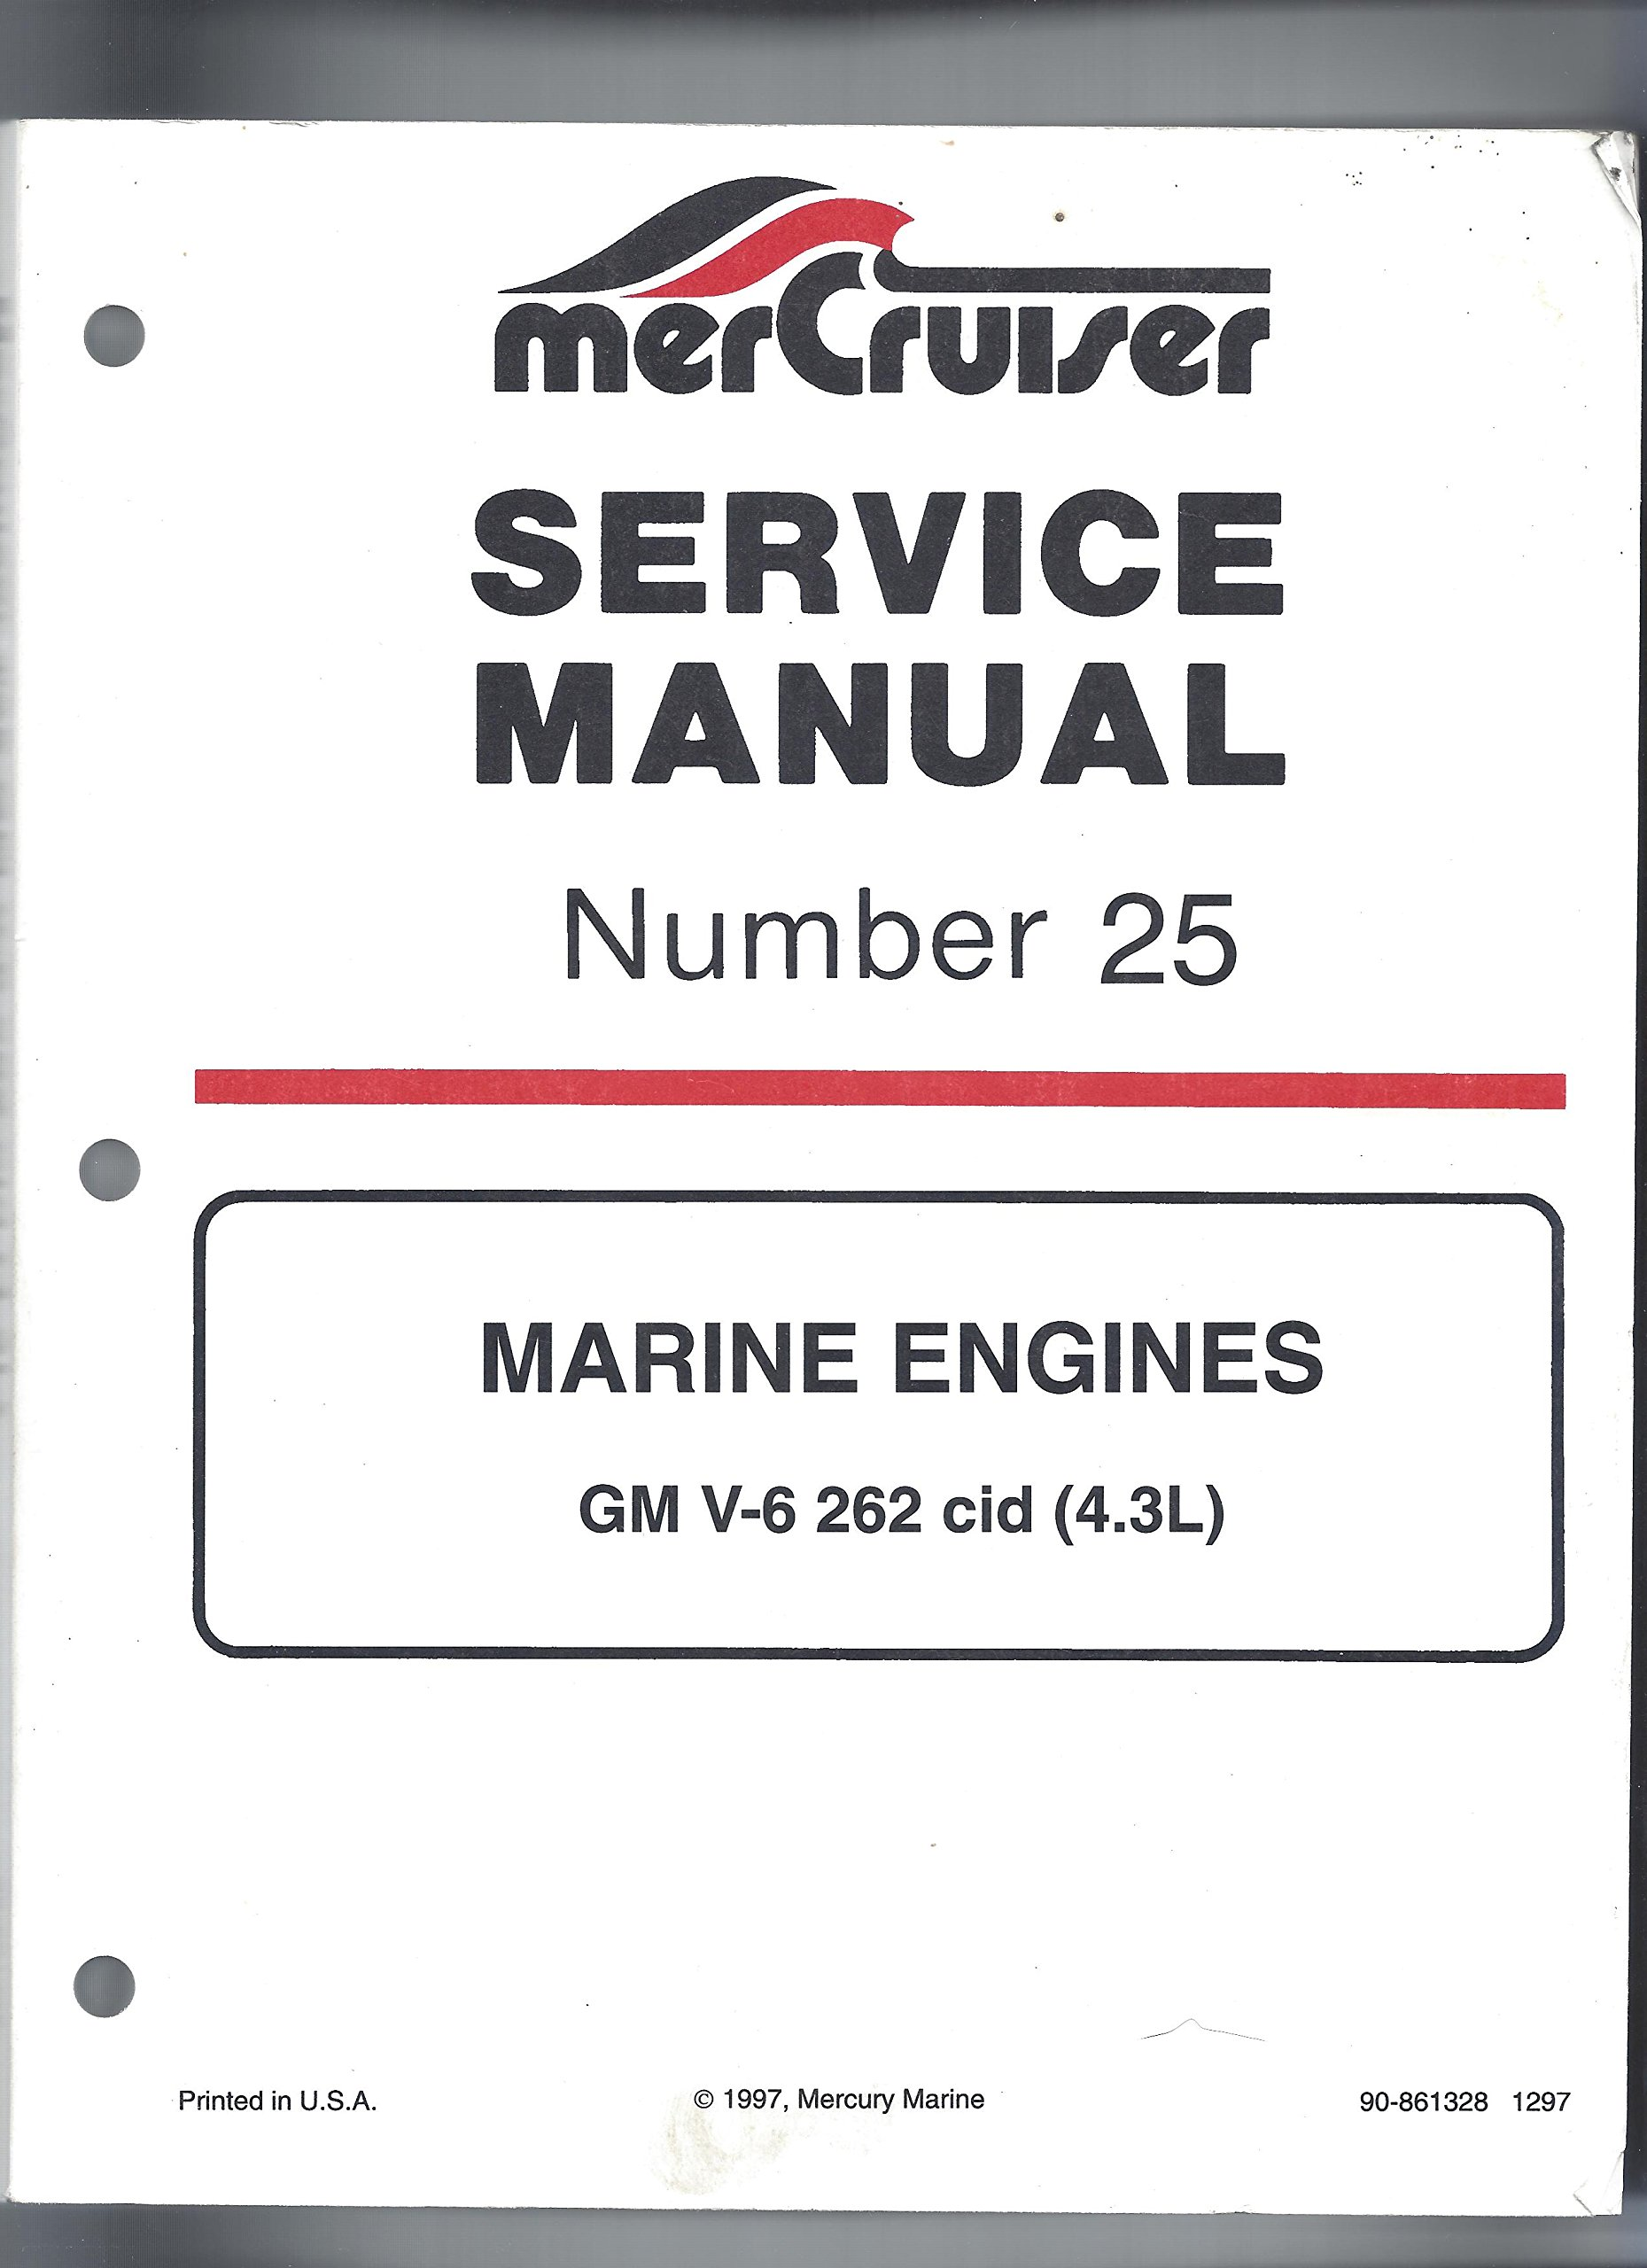 Mercury MerCruiser Service Manual Number 25 Marine Engines GM V-6 262 cid  (4.3L): Service Department Mercury Marine: Amazon.com: Books